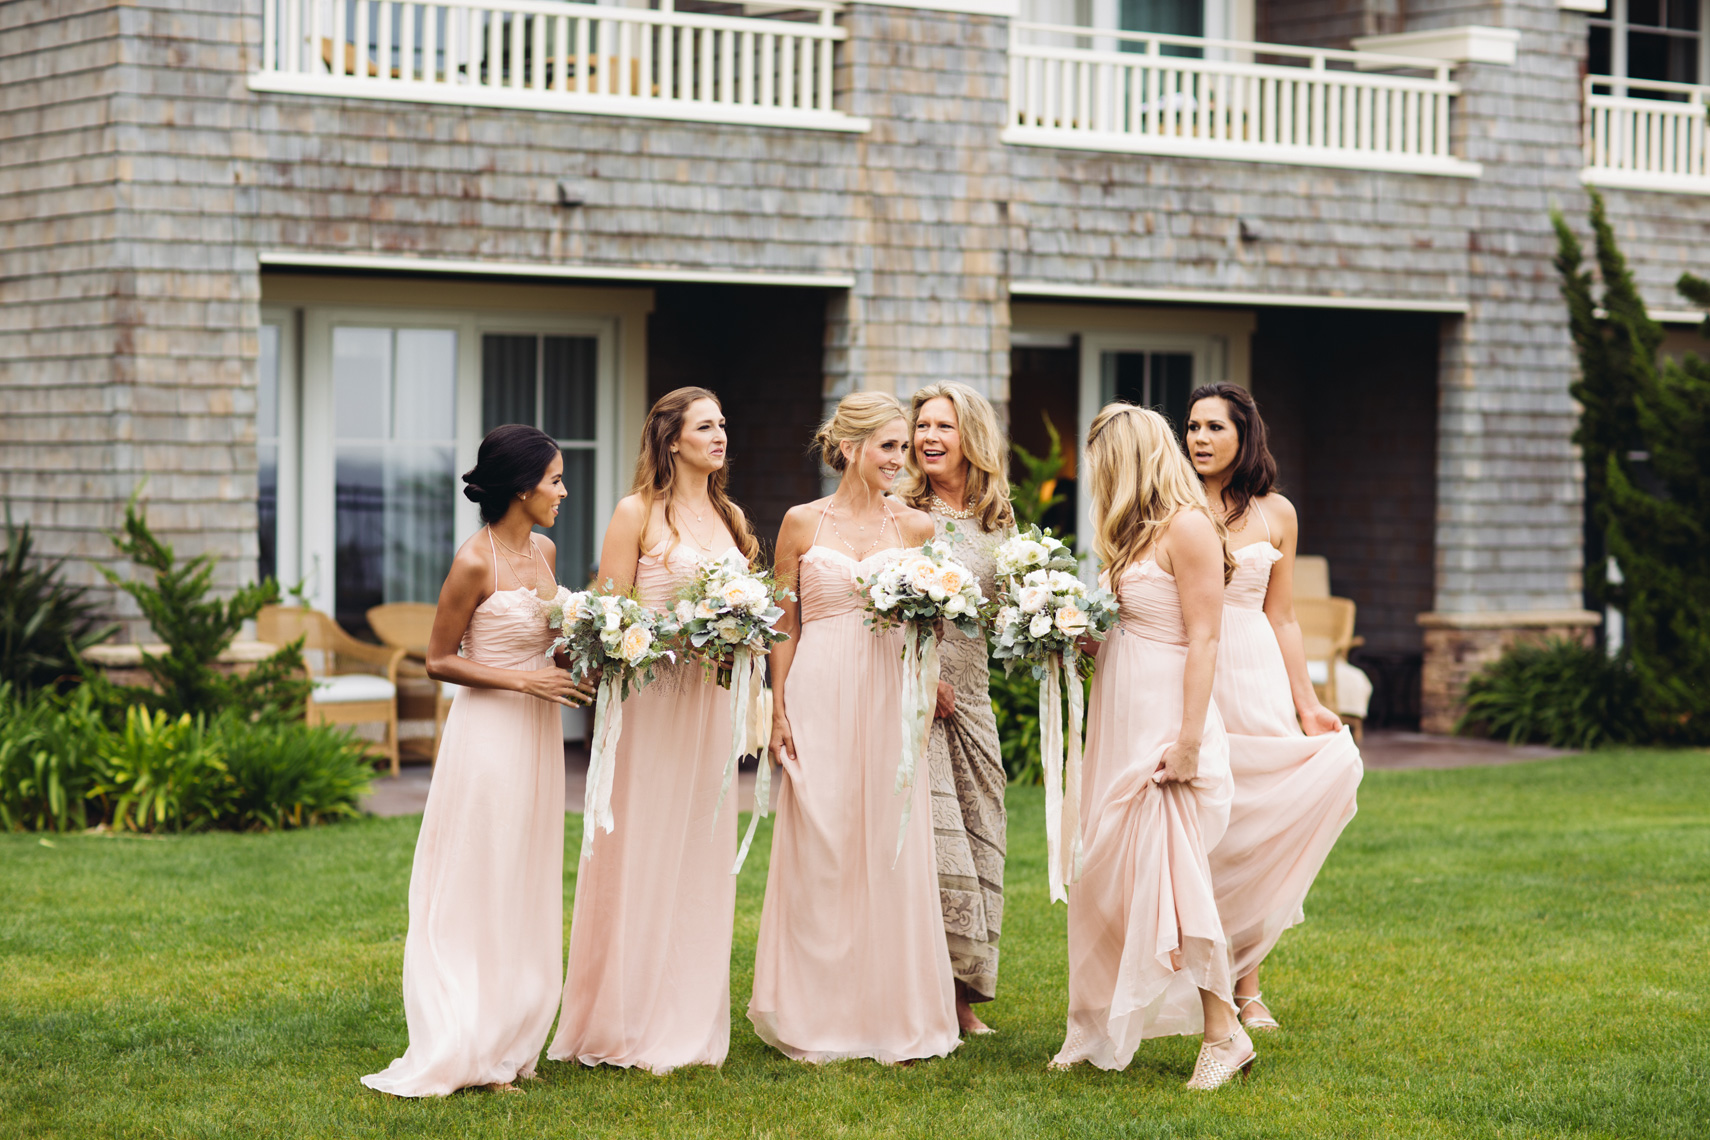 Bridesmaids gather at Montage Resort, Laguna Beach, prior to wedding.